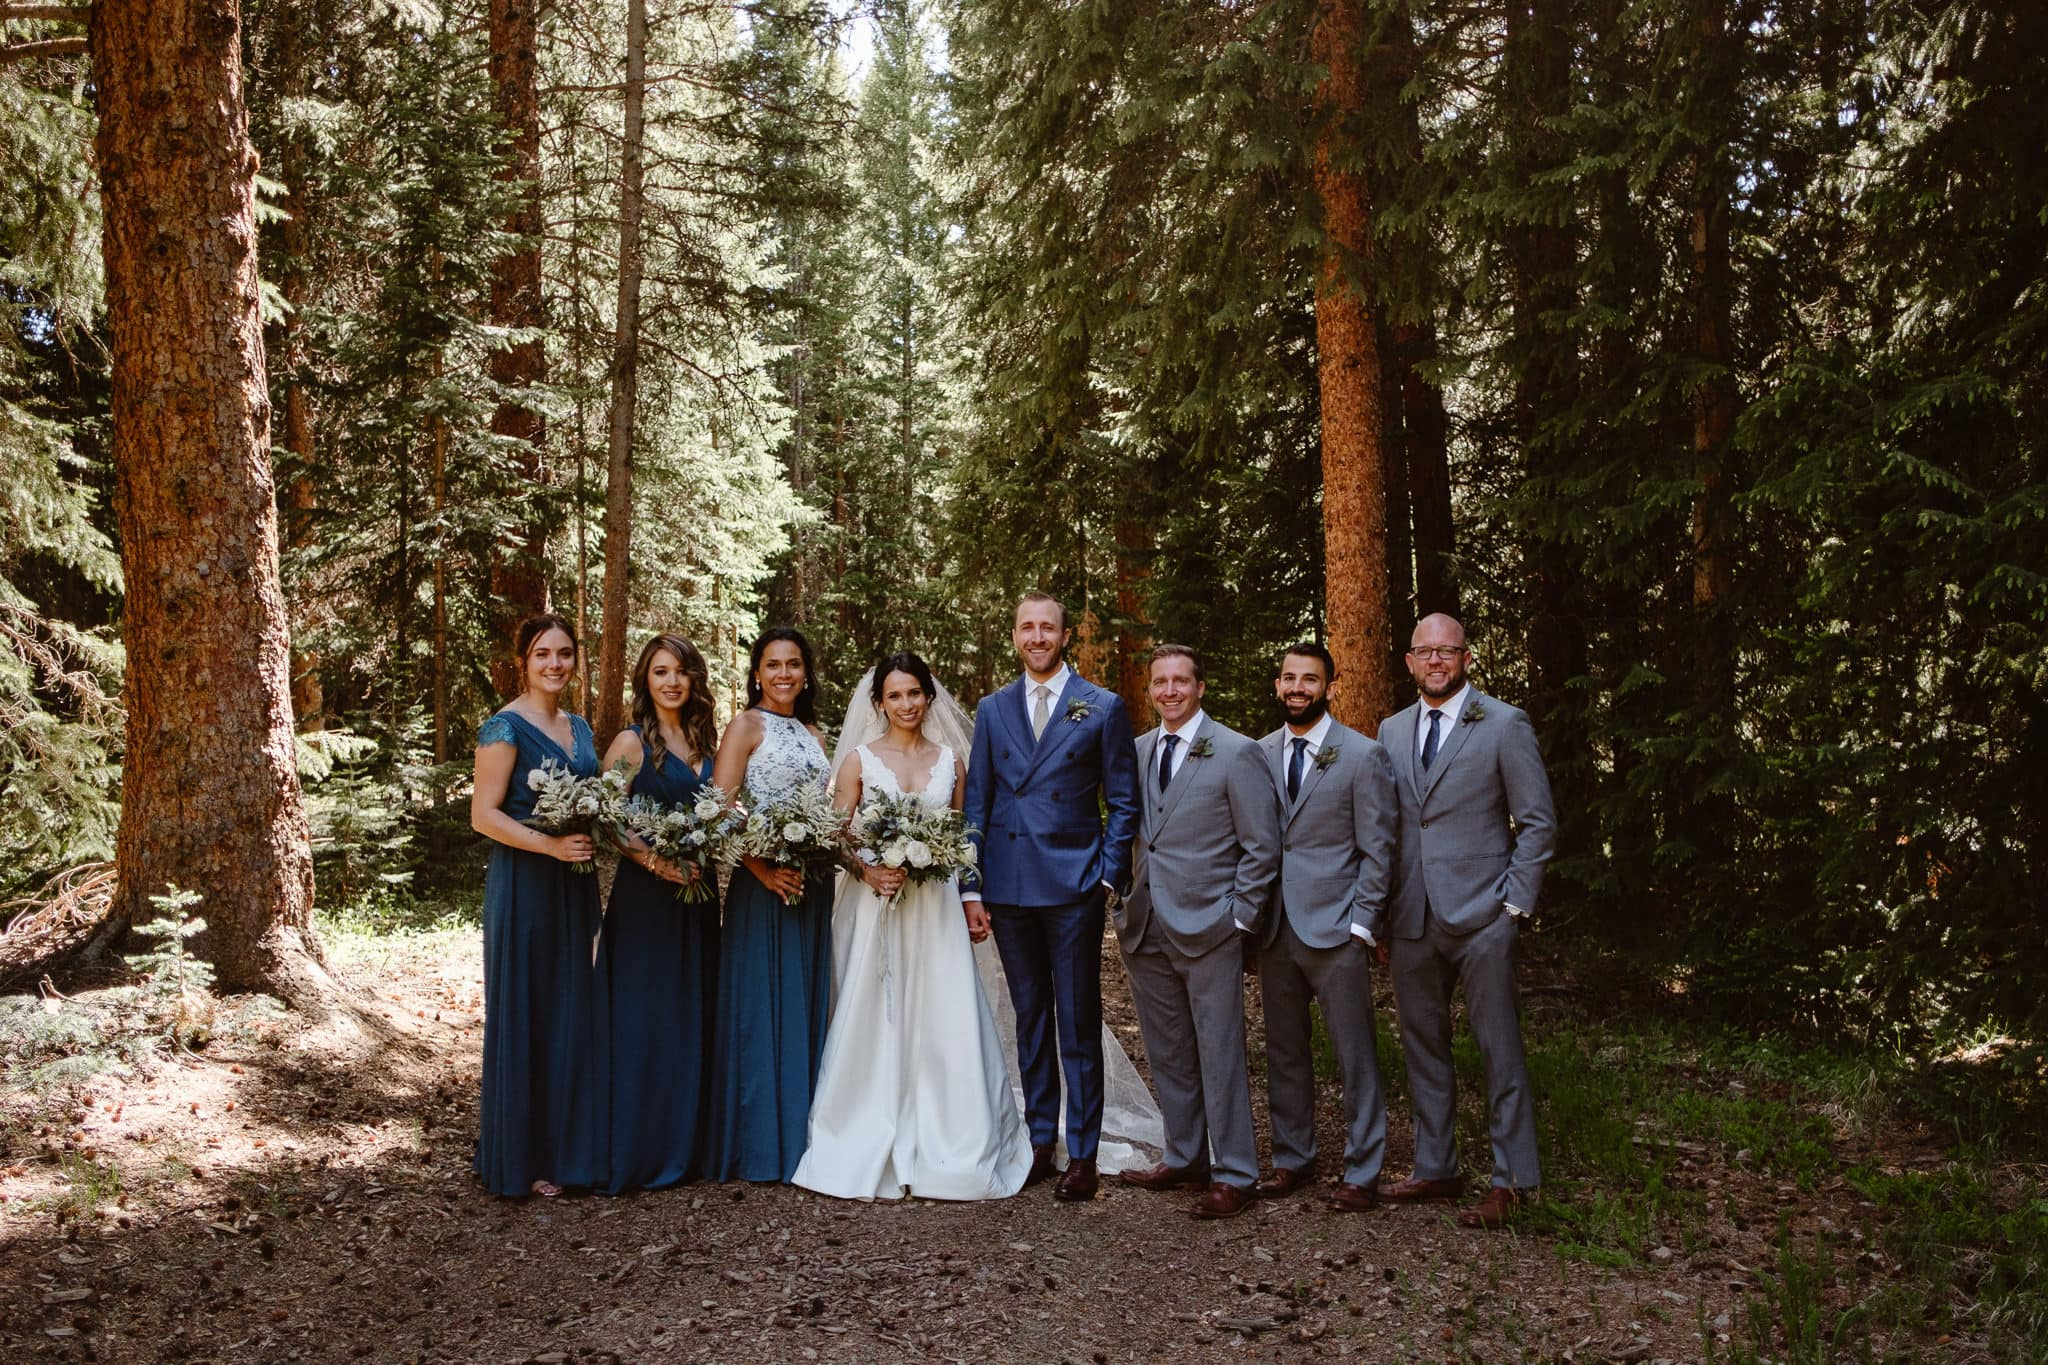 Bride and groom with their wedding party in the woods, Breckenridge Nordic Center wedding, Summit County wedding photographer